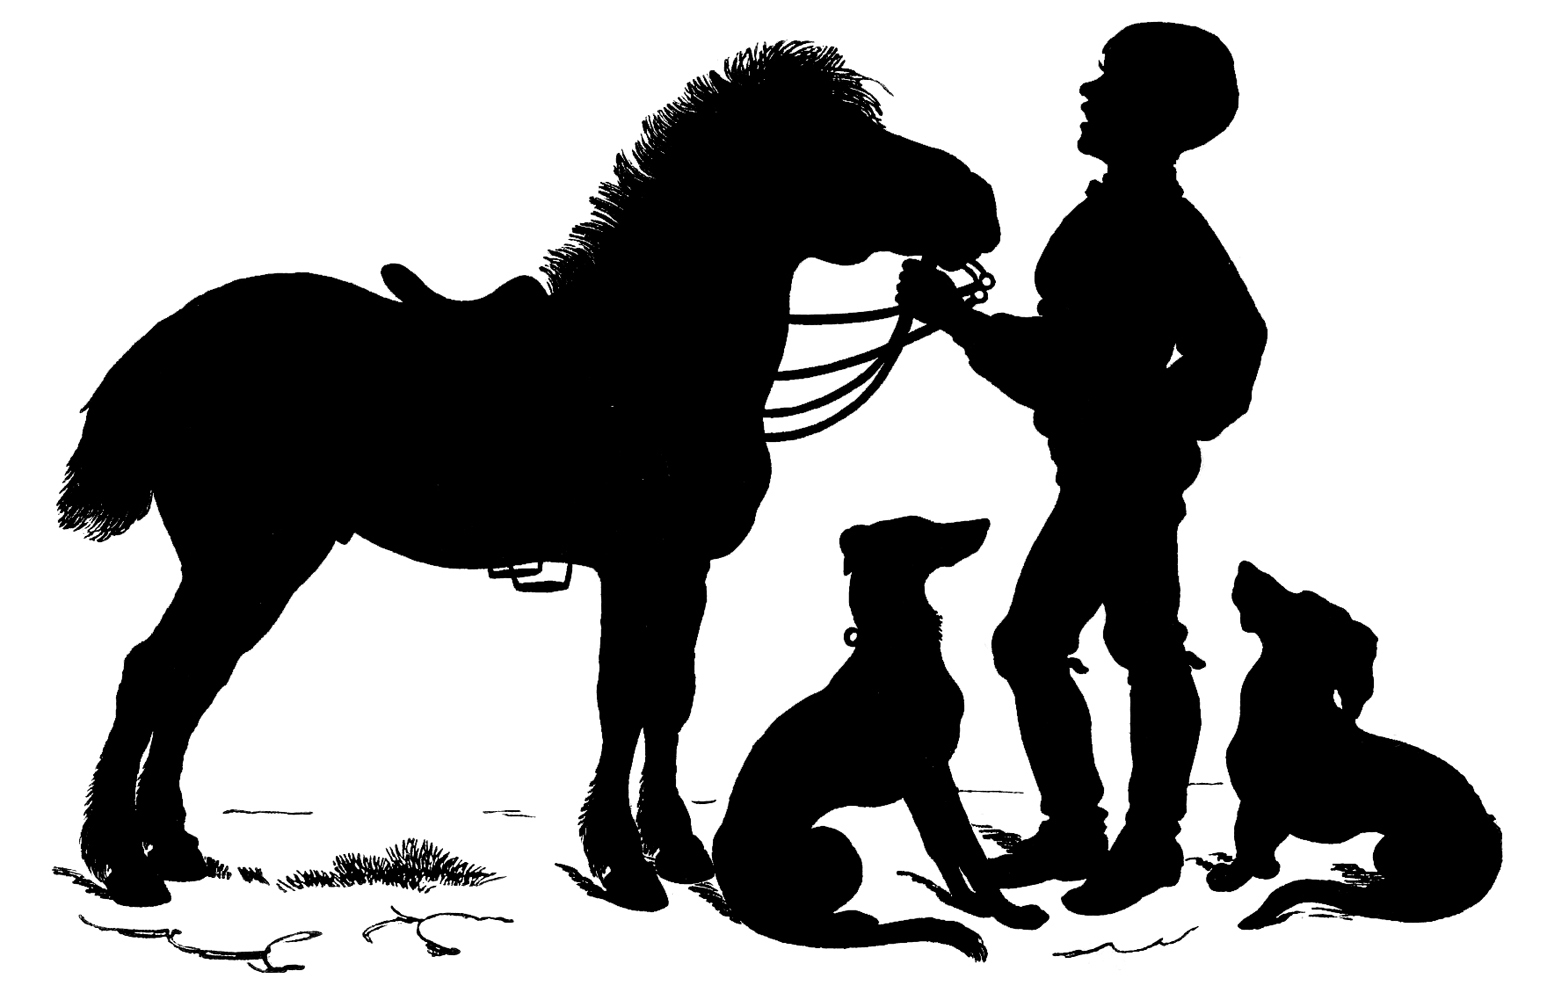 89silhouette+boy+horse+vintage+graphicsfairy012bg